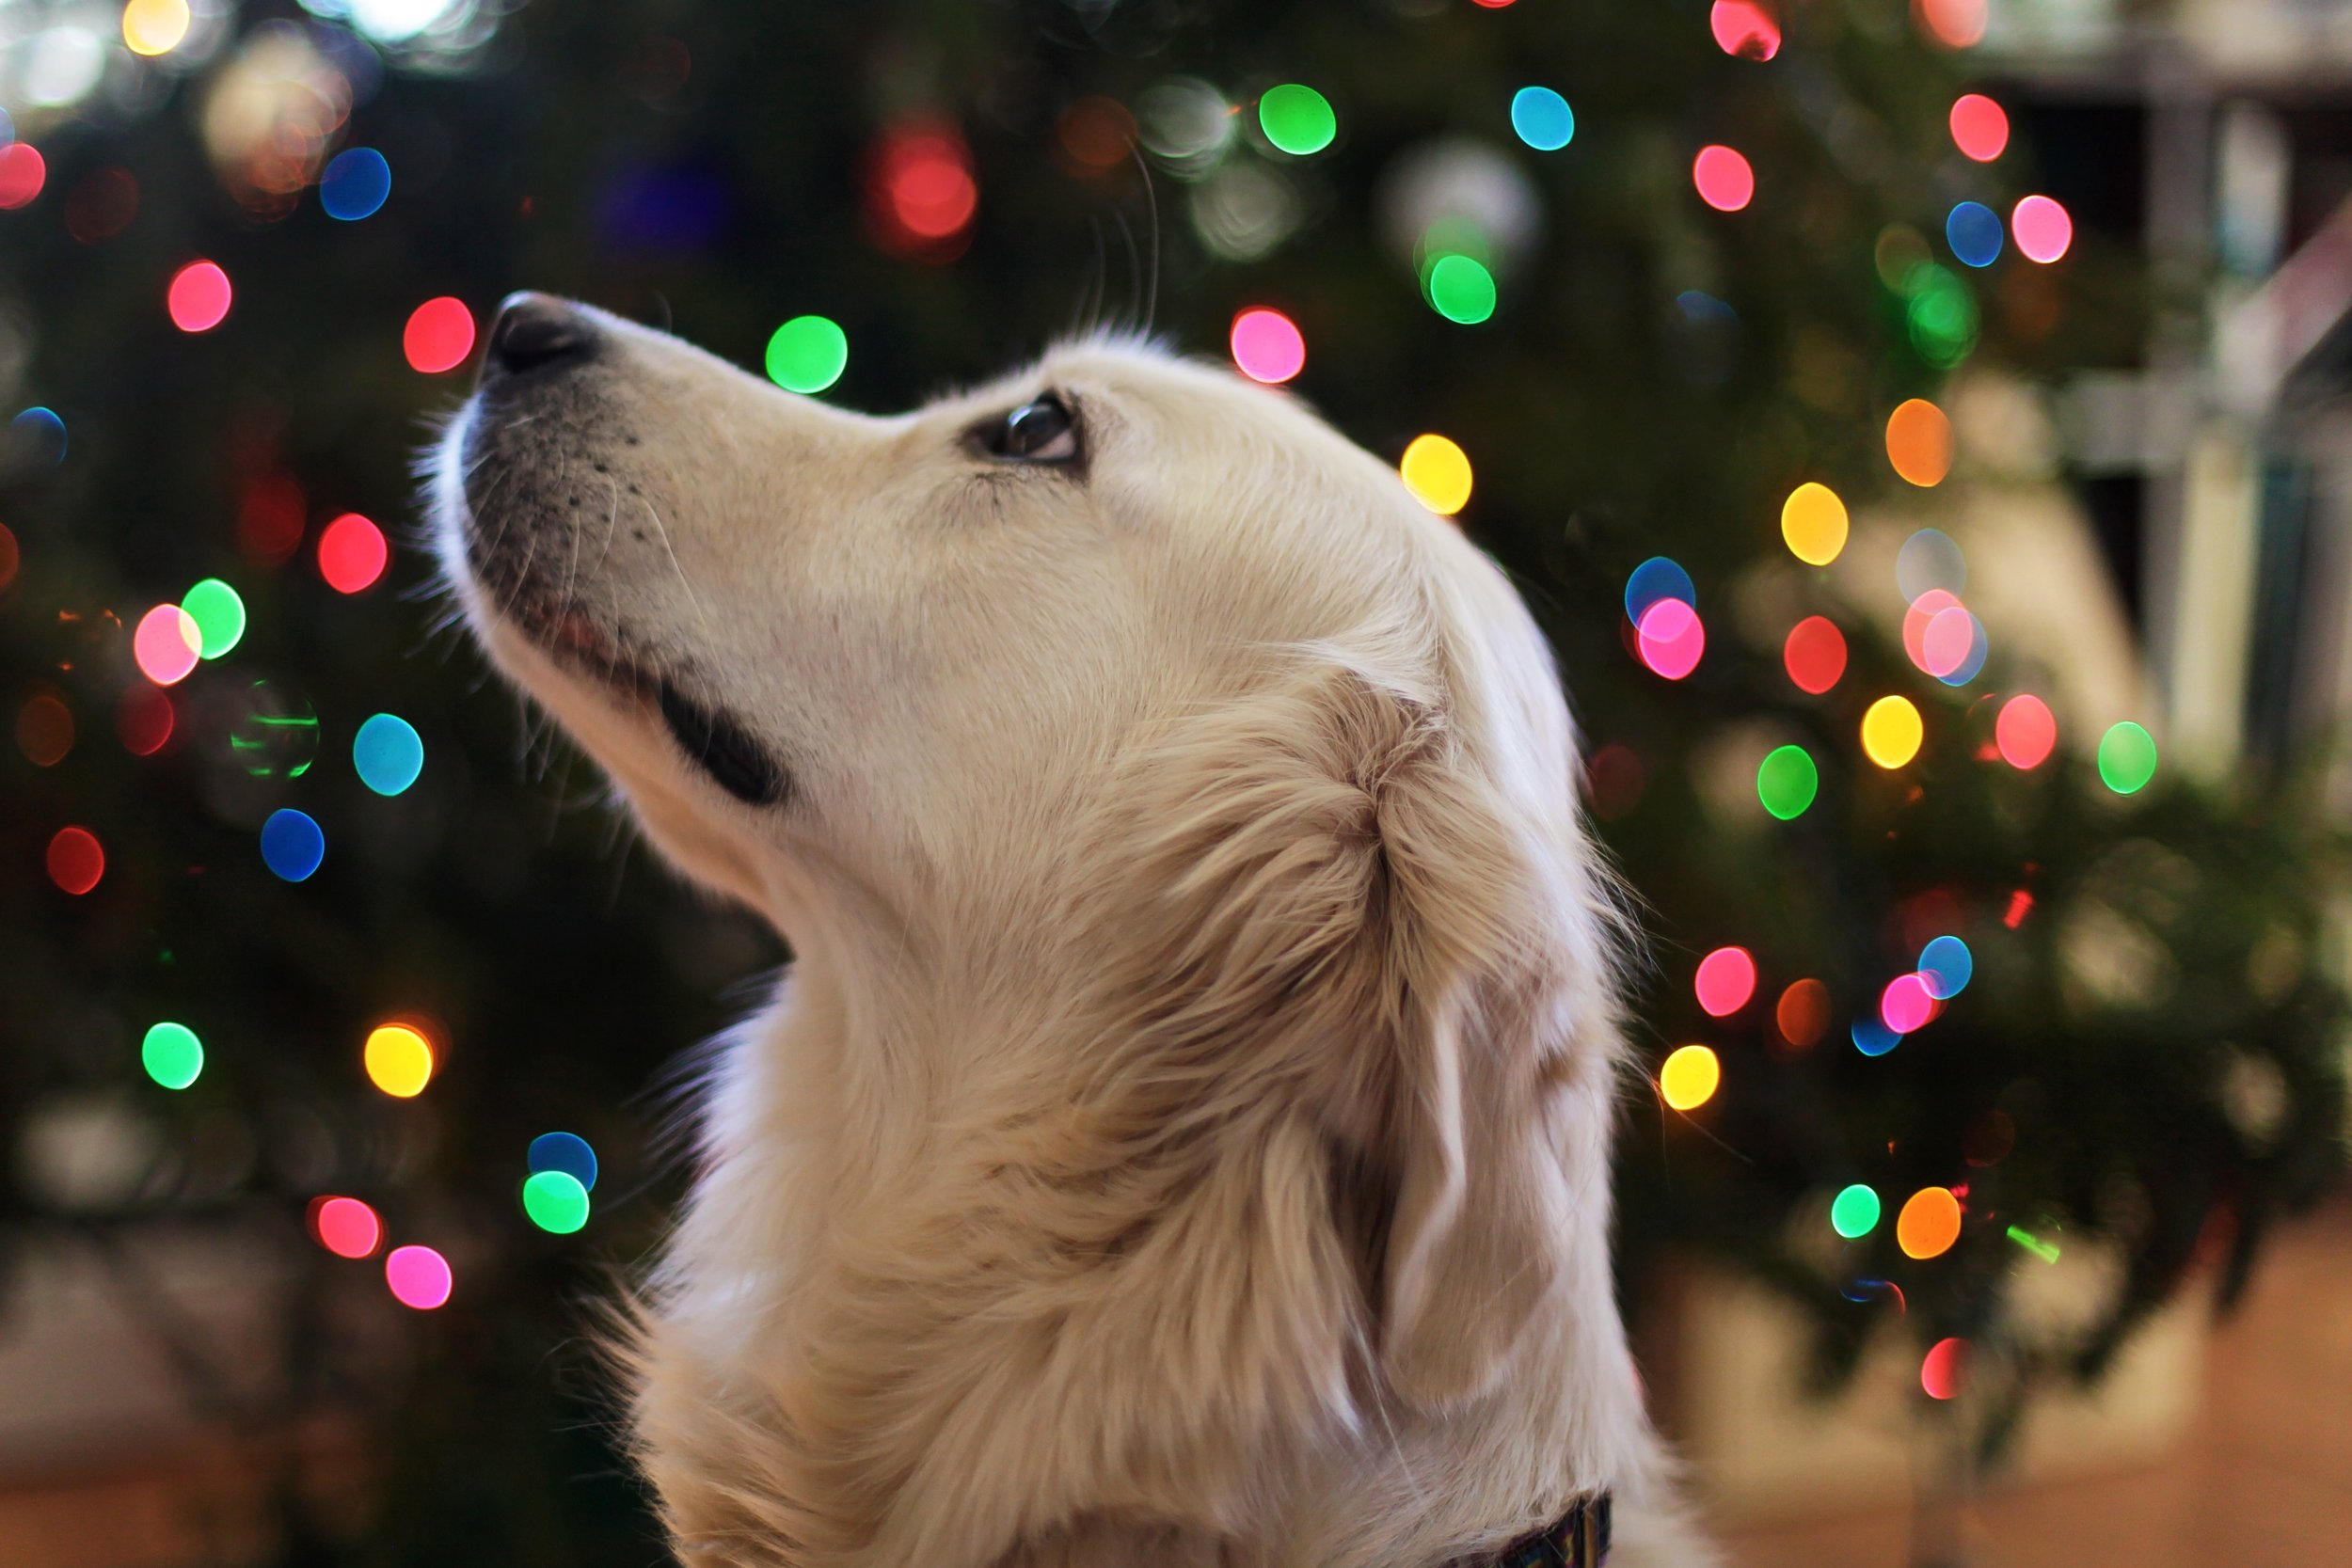 Lovely use of a holiday-themed background to make the picture beautiful and holiday-esque. The dog's face is soft and if I had to guess, something she likes is being help up and to the left.